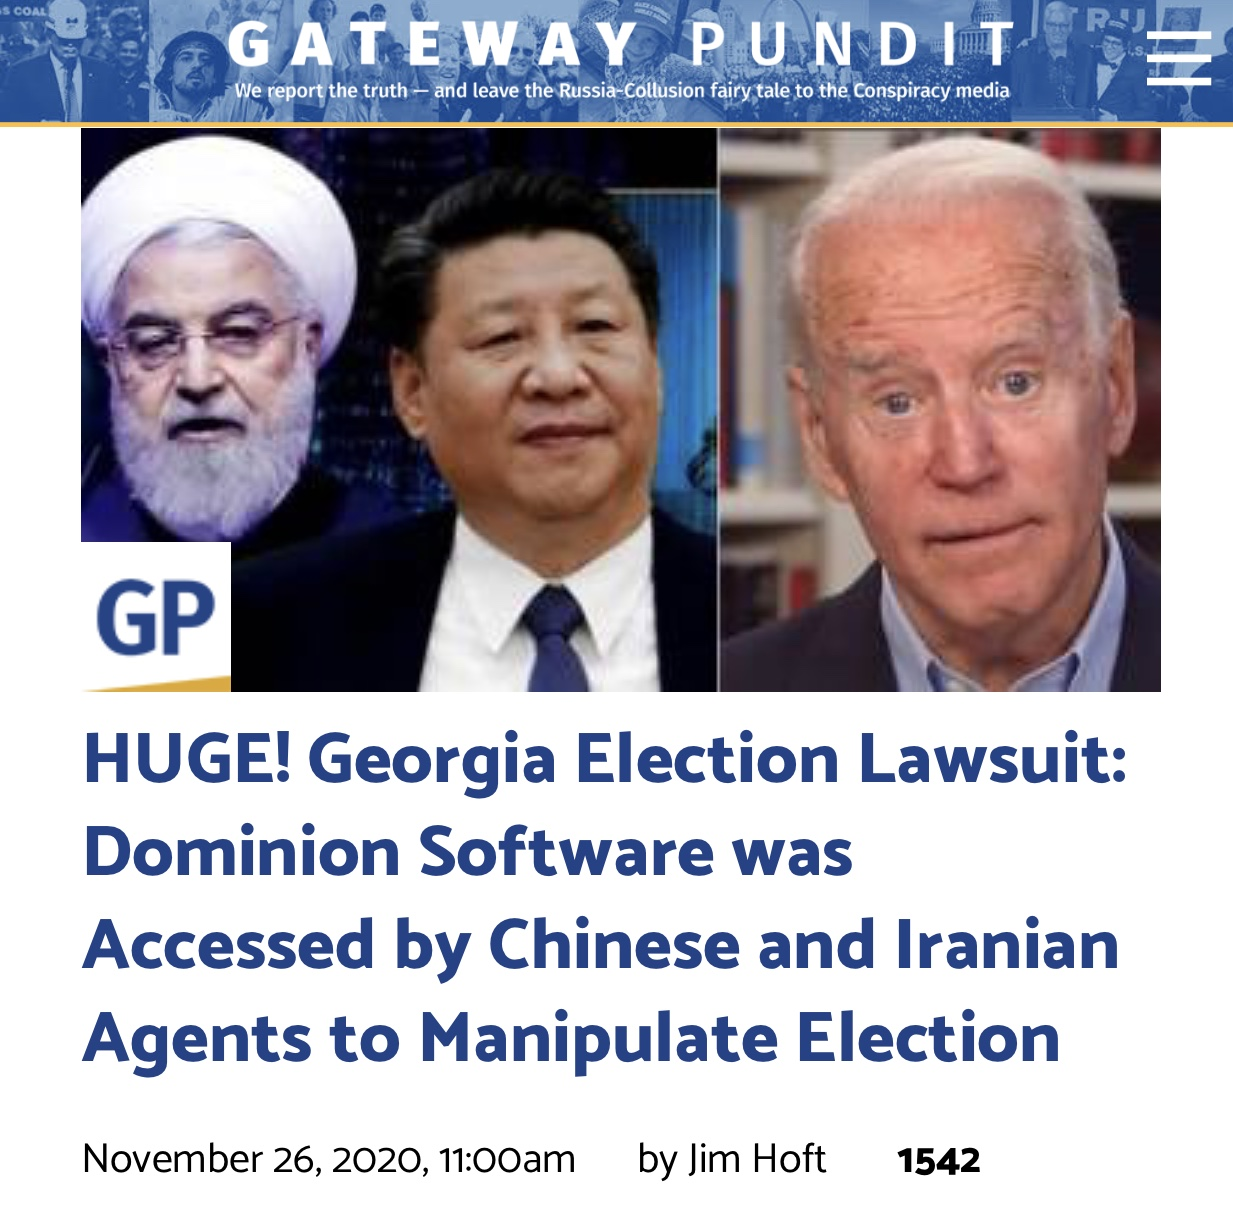 HUGE! Georgia Election Lawsuit: Dominion Software was Accessed by Chinese and Iranian Agents to Manipulate Election